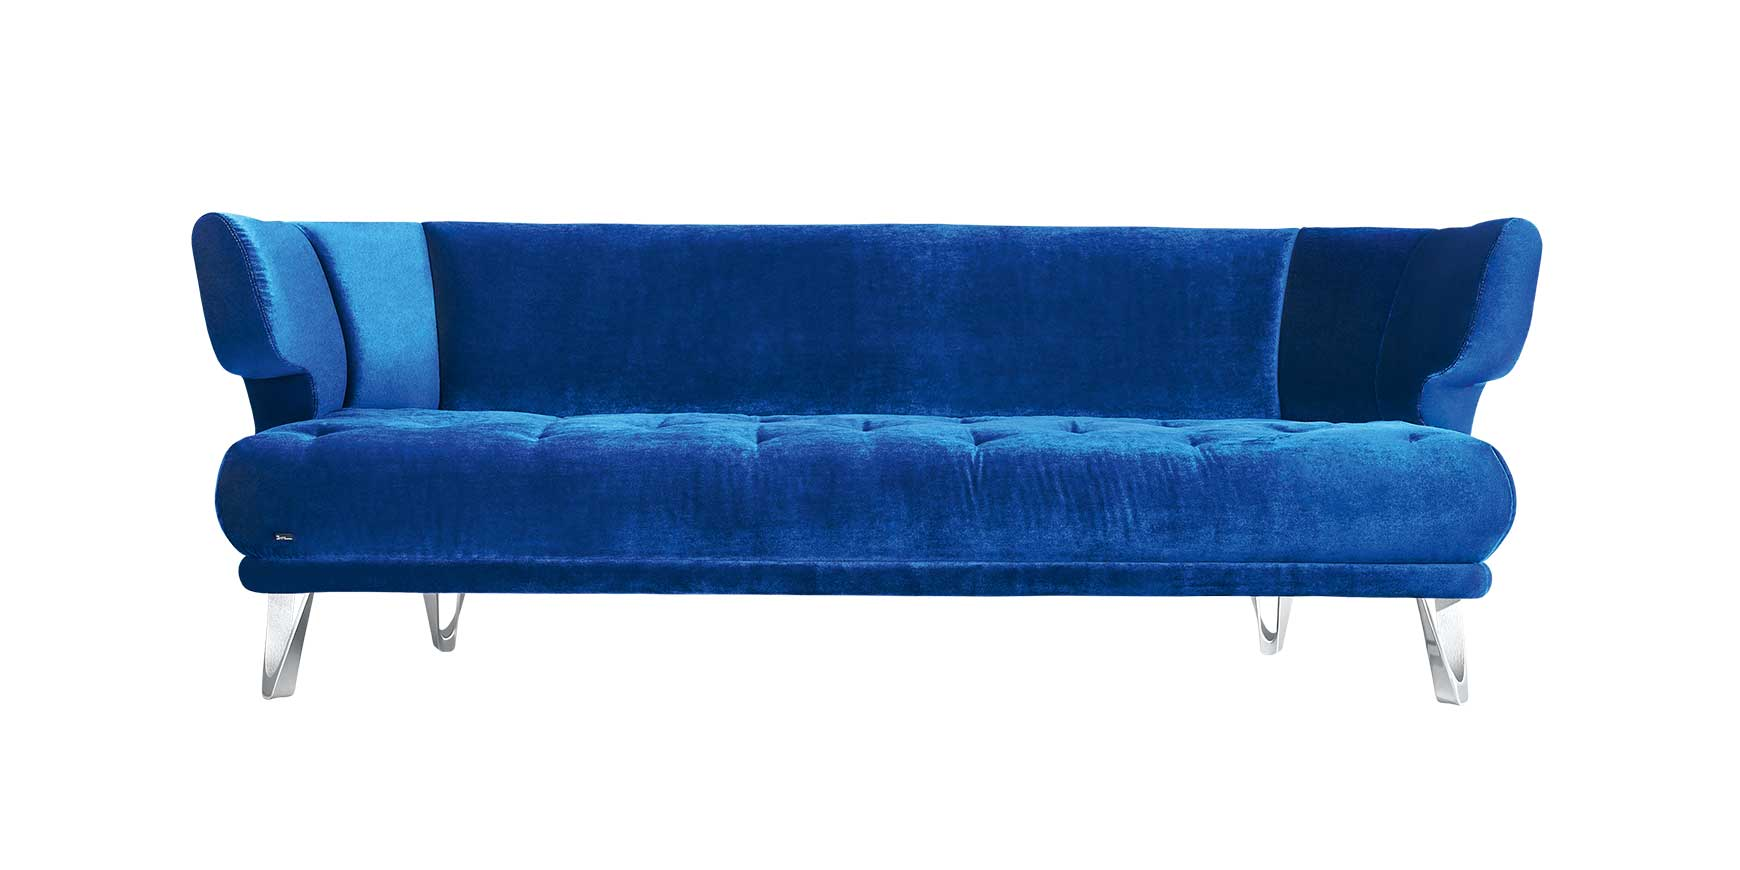 croissant f113 sofa von bretz in blue moon bretz designerm bel n rnberg. Black Bedroom Furniture Sets. Home Design Ideas